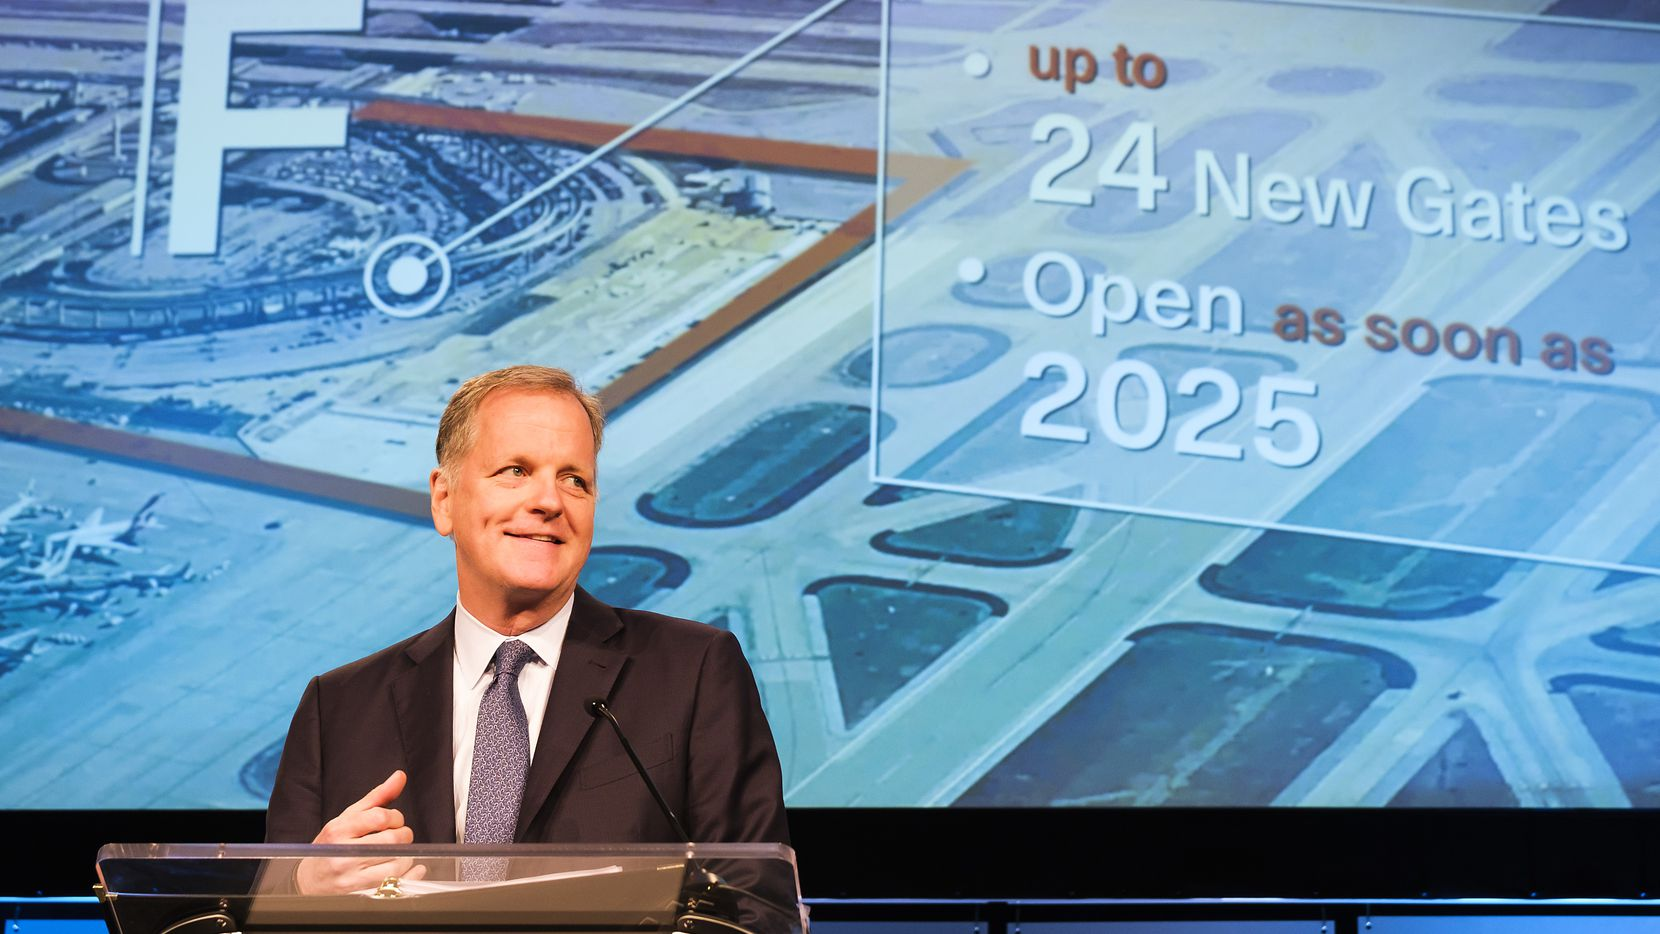 American Airlines CEO Doug Parker speaks after it was announced that the airport would be adding a new terminal during the annual state of the airport address at the Hyatt Regency DFW on May 20, 2019. The new terminal, named Terminal F, will add 24 gates and open as soon as 2025.